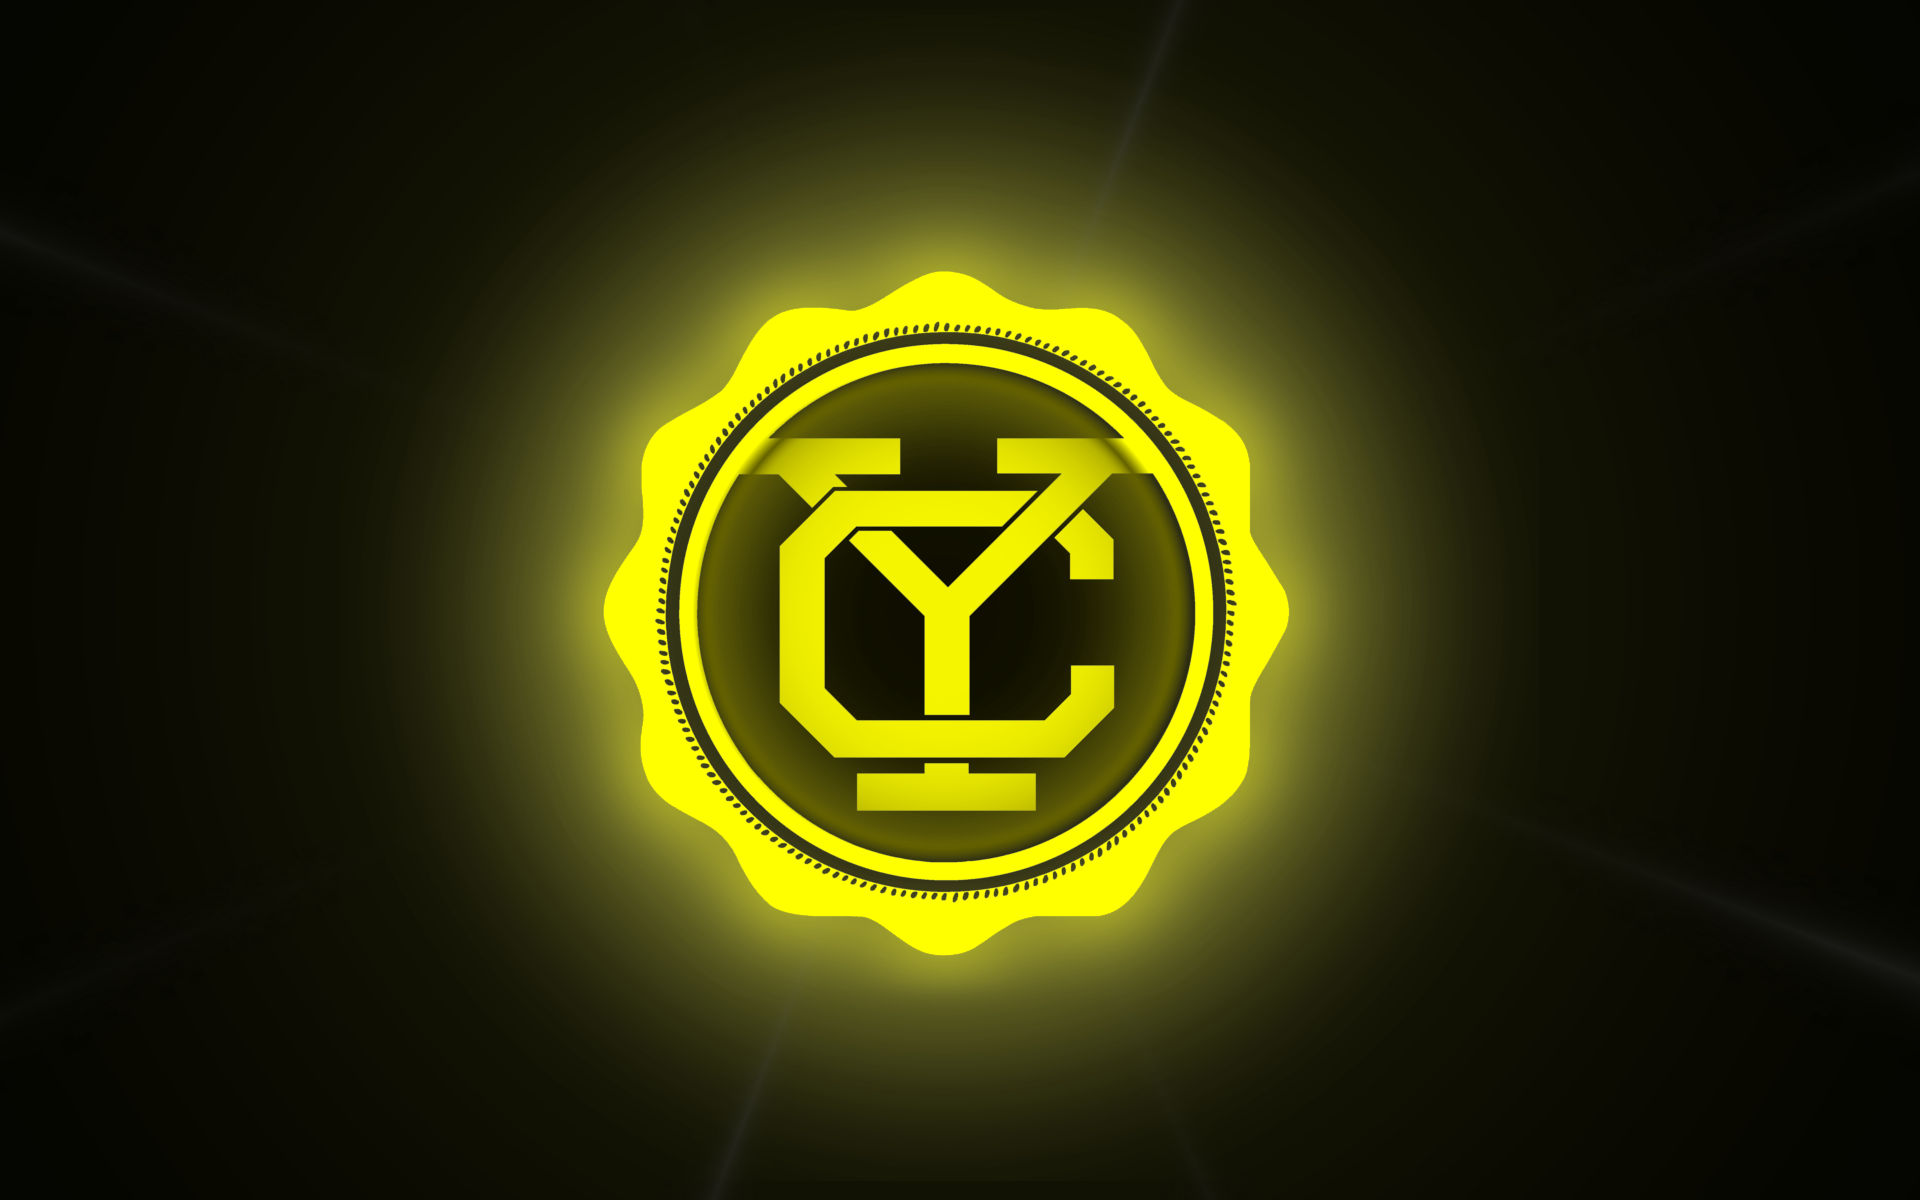 Yellowcard Wall by flamevulture17 1920x1200